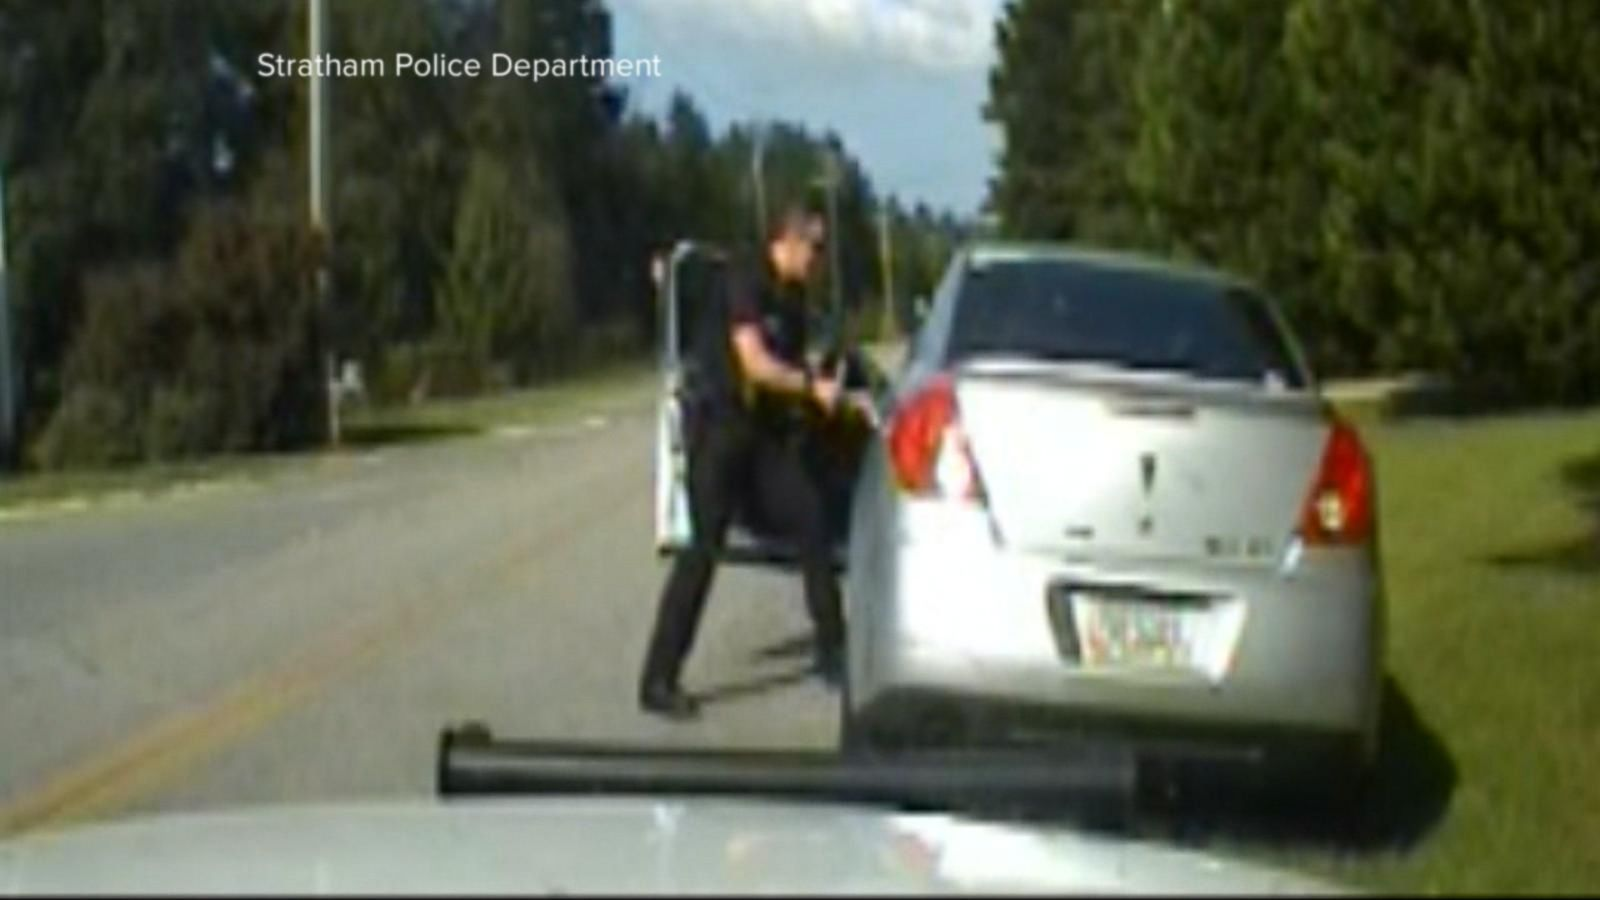 VIDEO: Index: Police Officer Dragged Behind Vehicle During a Traffic Stop